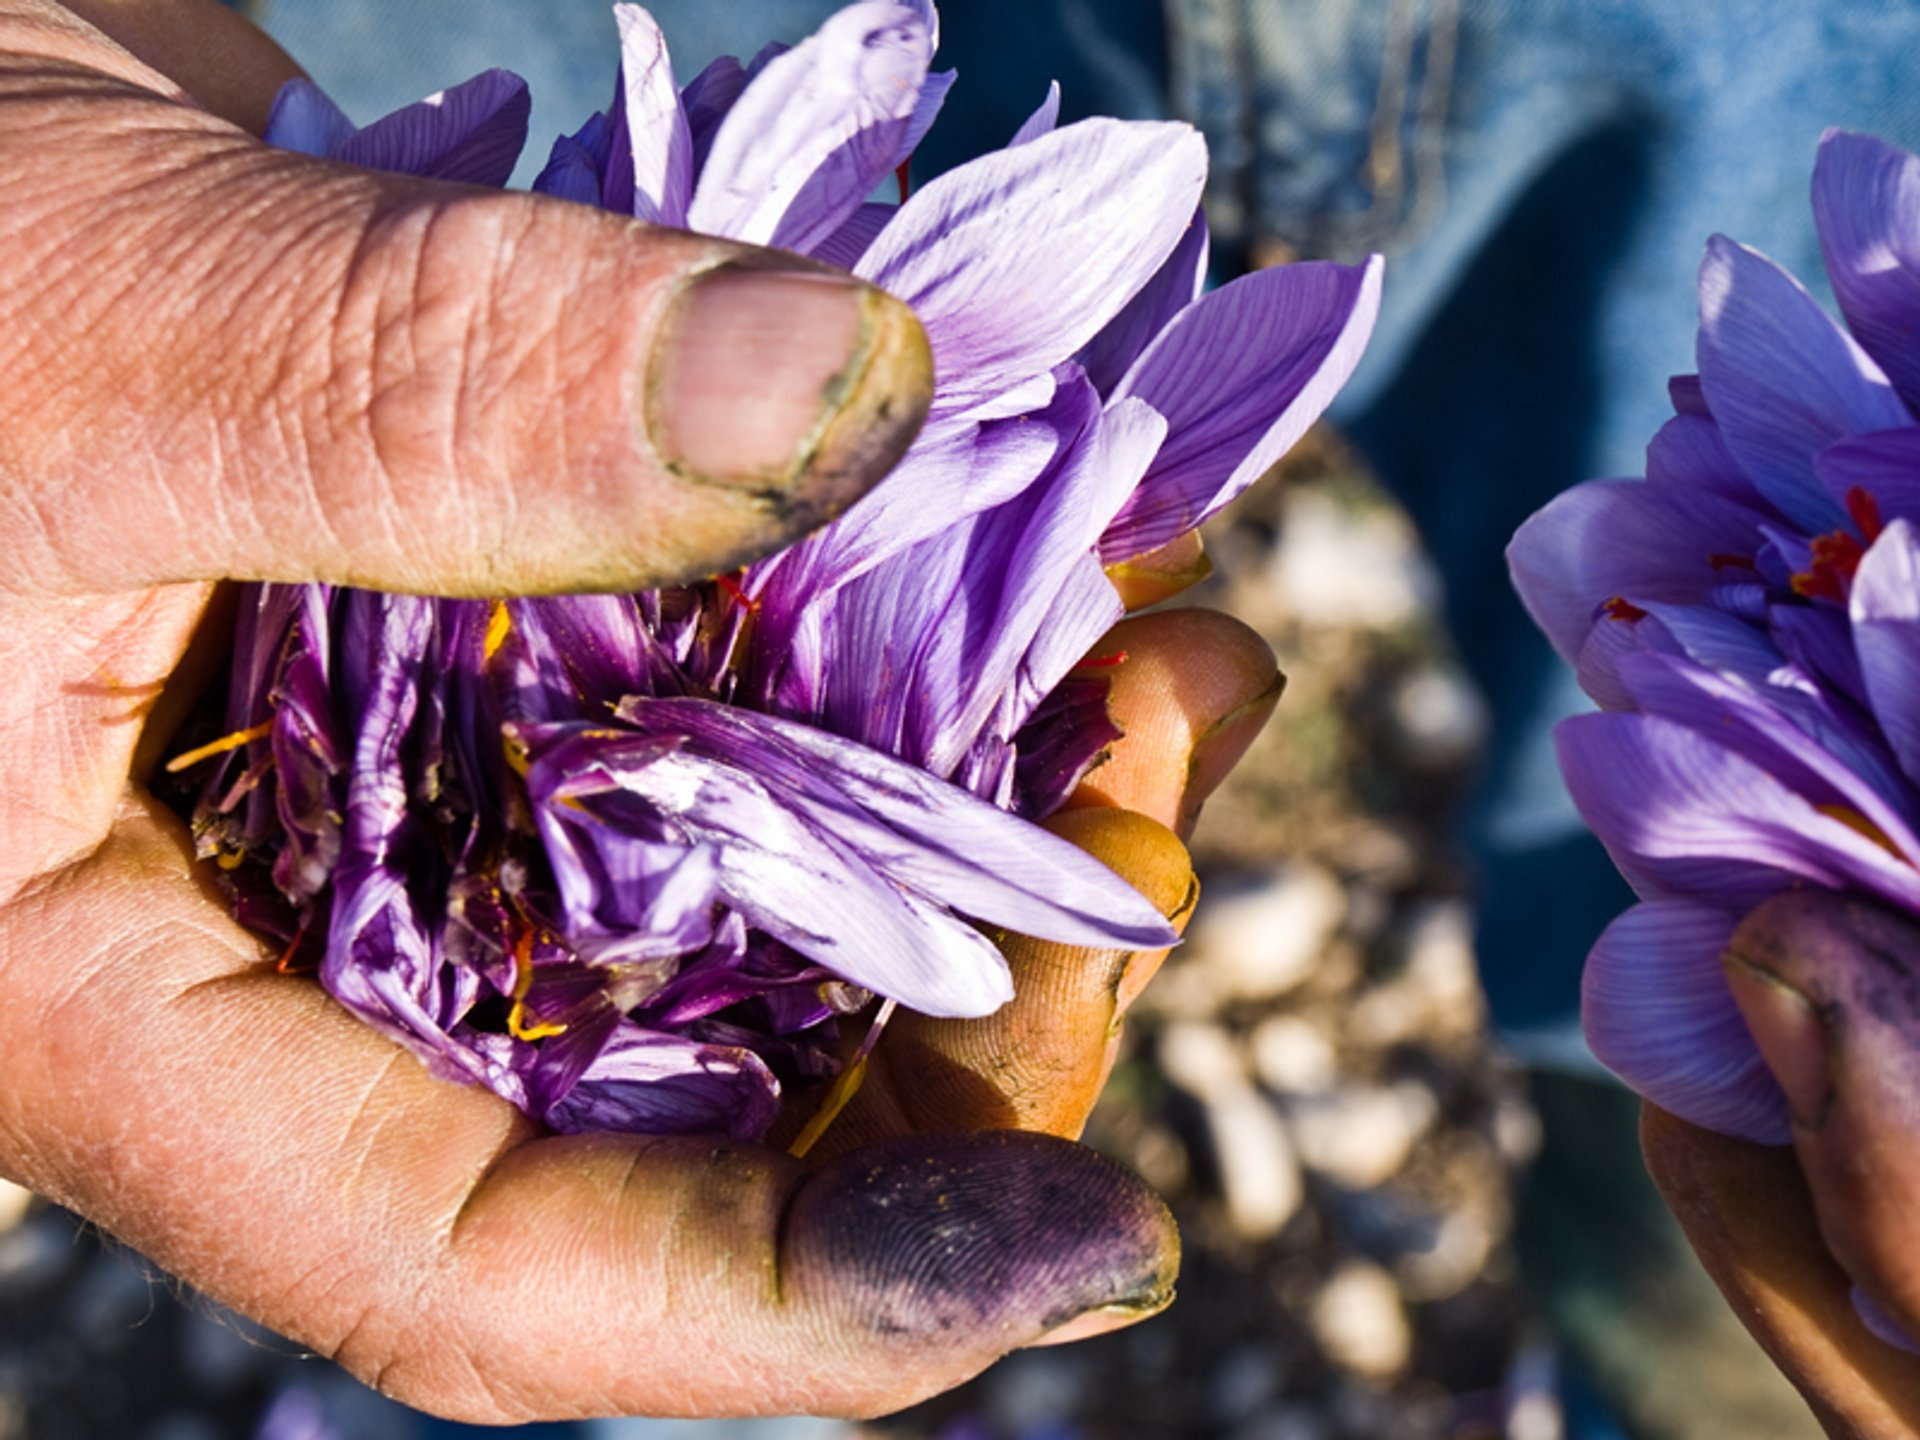 Best time to see Saffron Harvest in Greece 2019